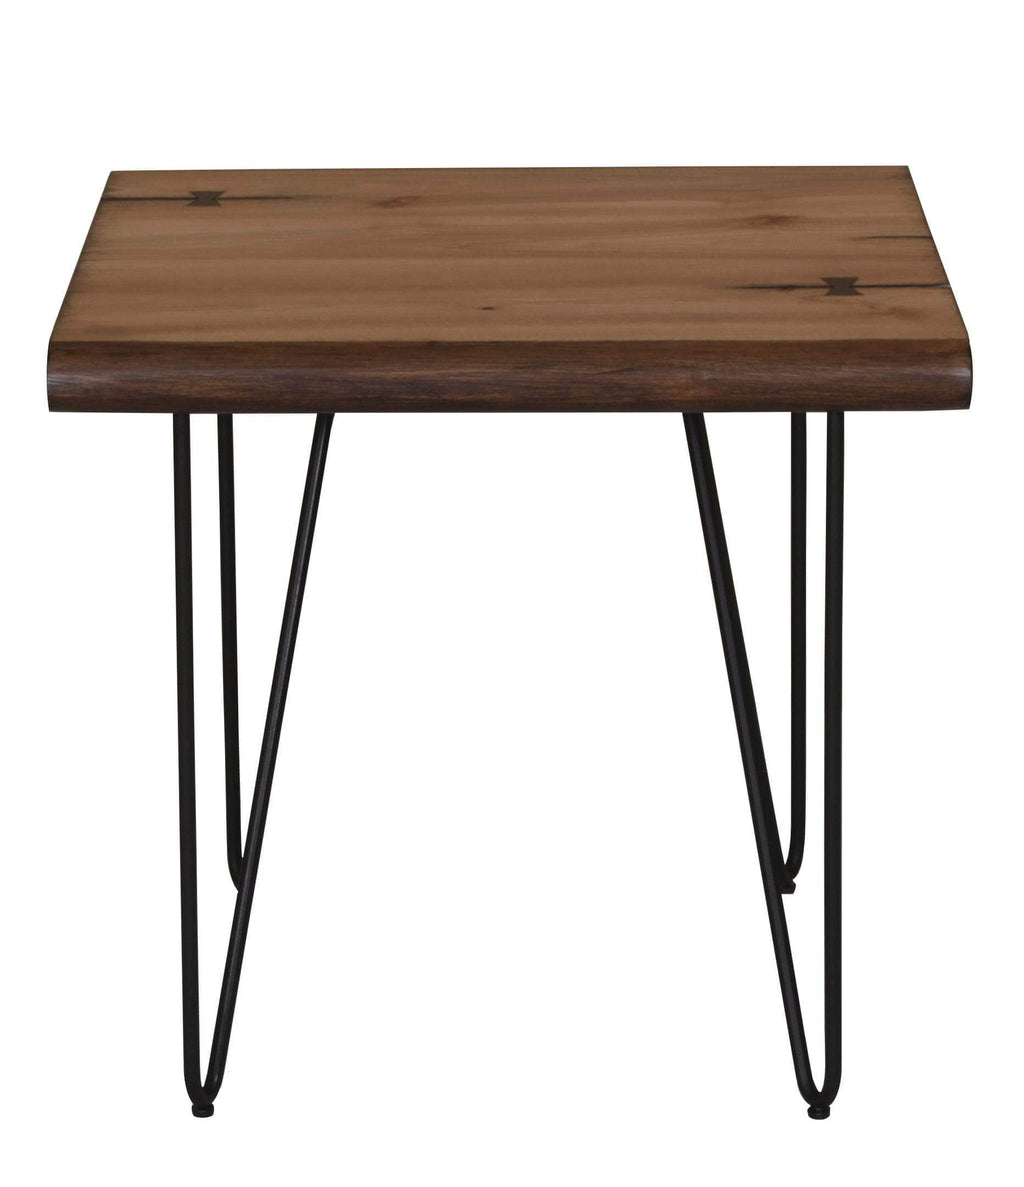 Scott Living Mid-Century Modern Mahogany Coffee Table - What A Room Furniture